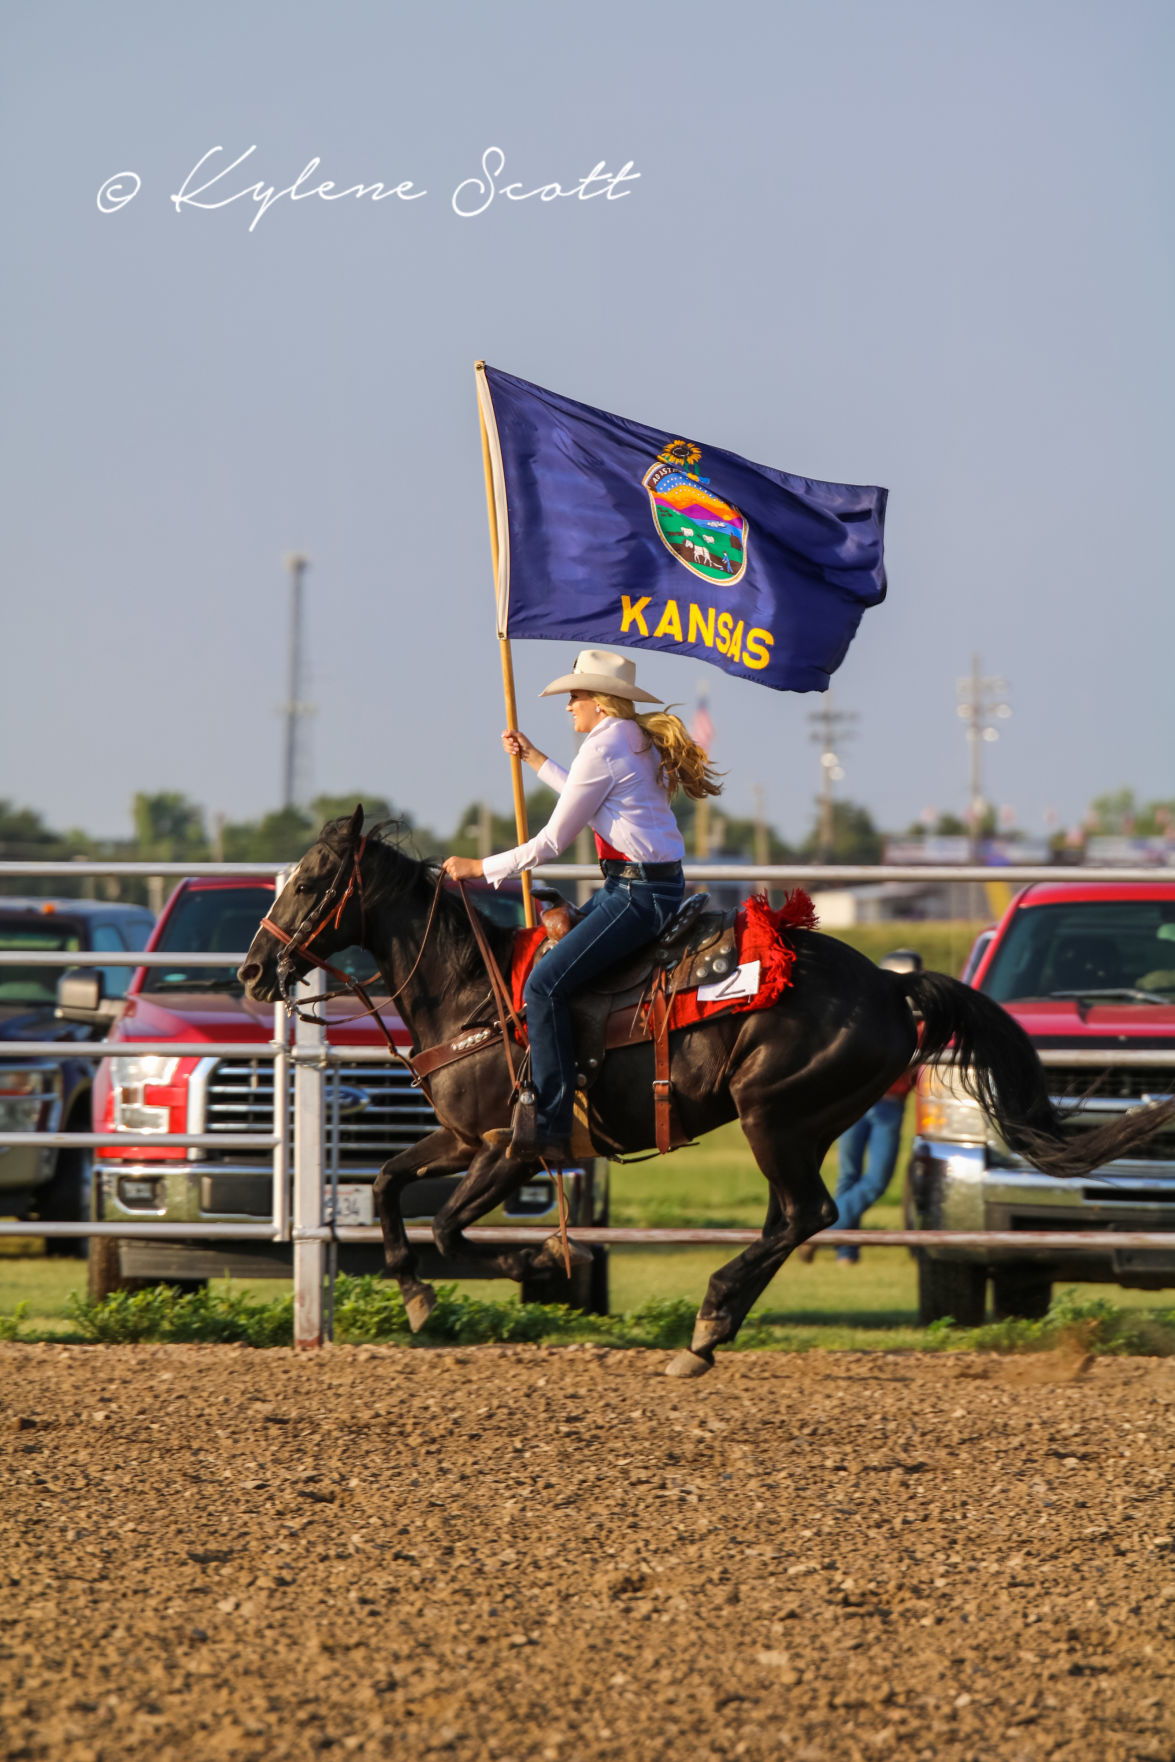 Miss Rodeo Kansas Horsemanship Competition Kylene S Blog